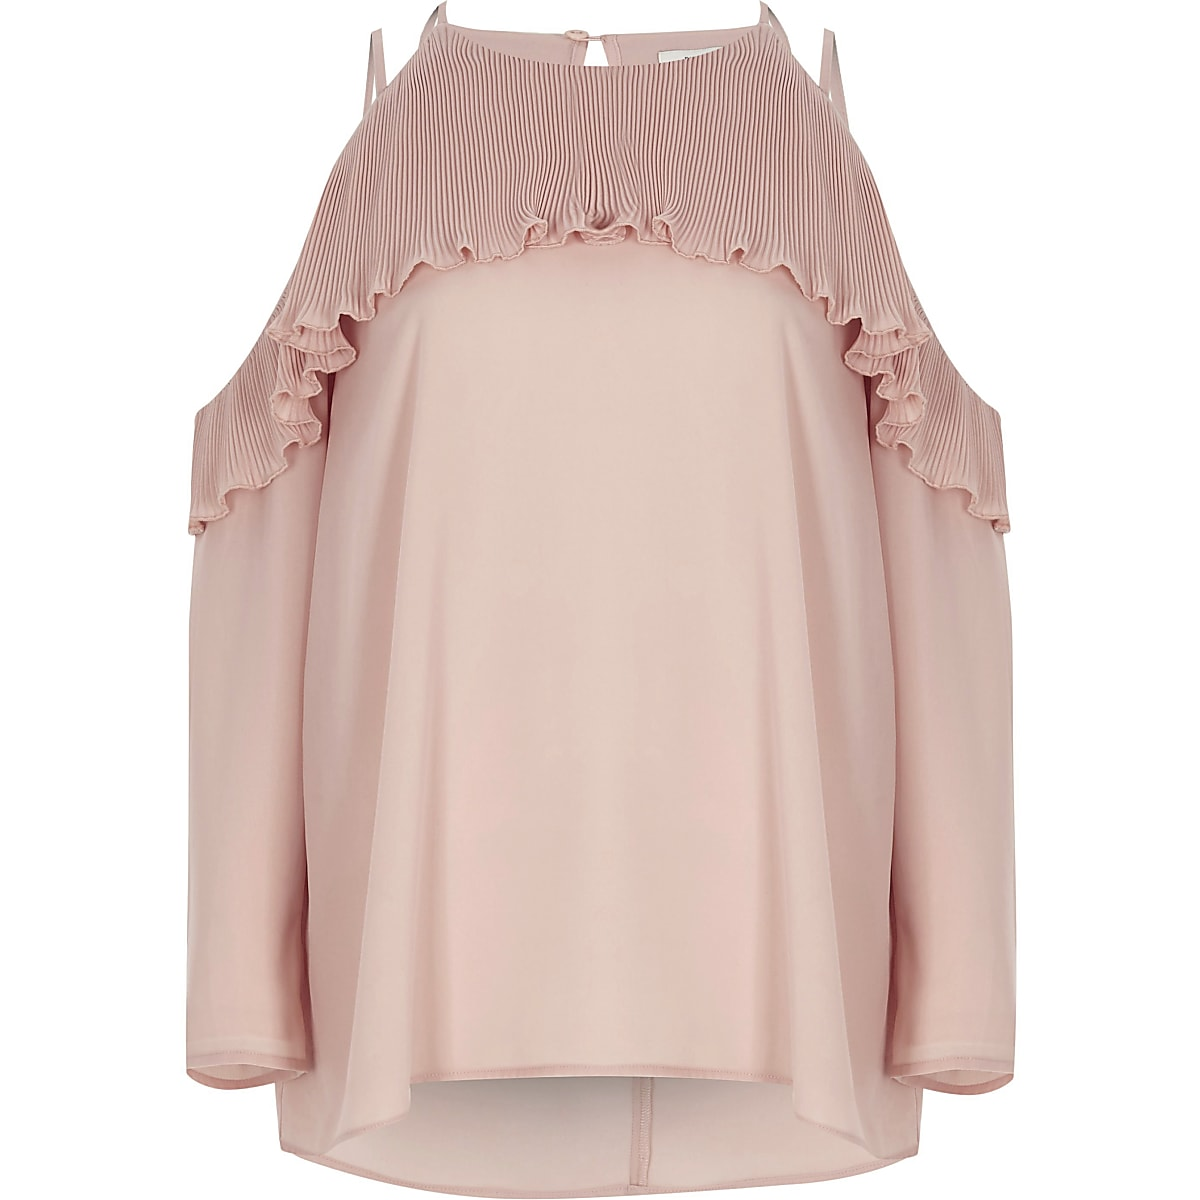 Light pink cold shoulder pleated frill blouse